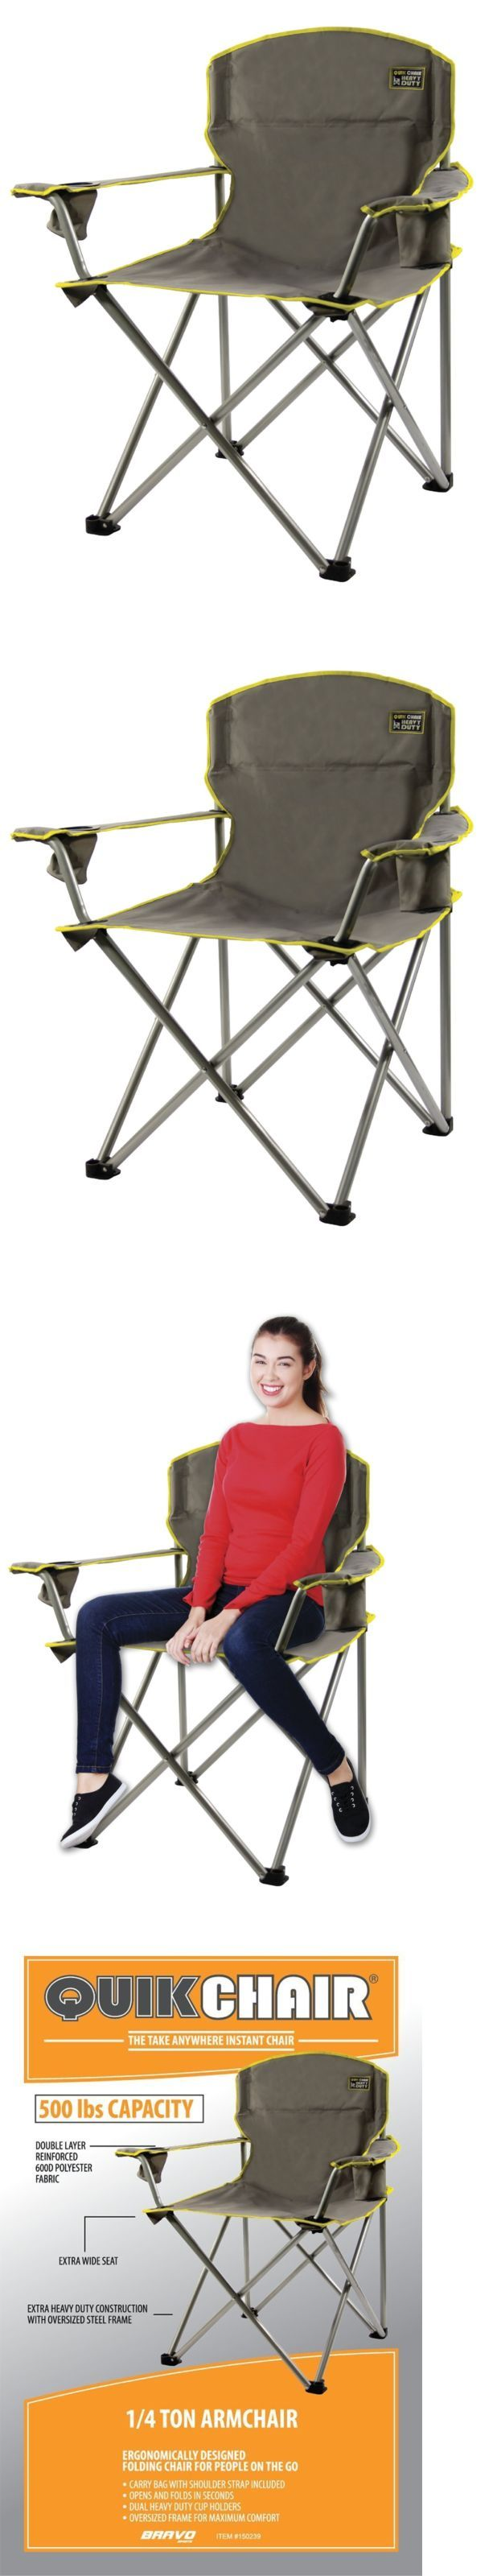 Camping Furniture 16038: Heavy Duty Portable Folding Picnic Chair Beach Camping Outdoor Seat Lawn Patio -> BUY IT NOW ONLY: $30.34 on eBay!